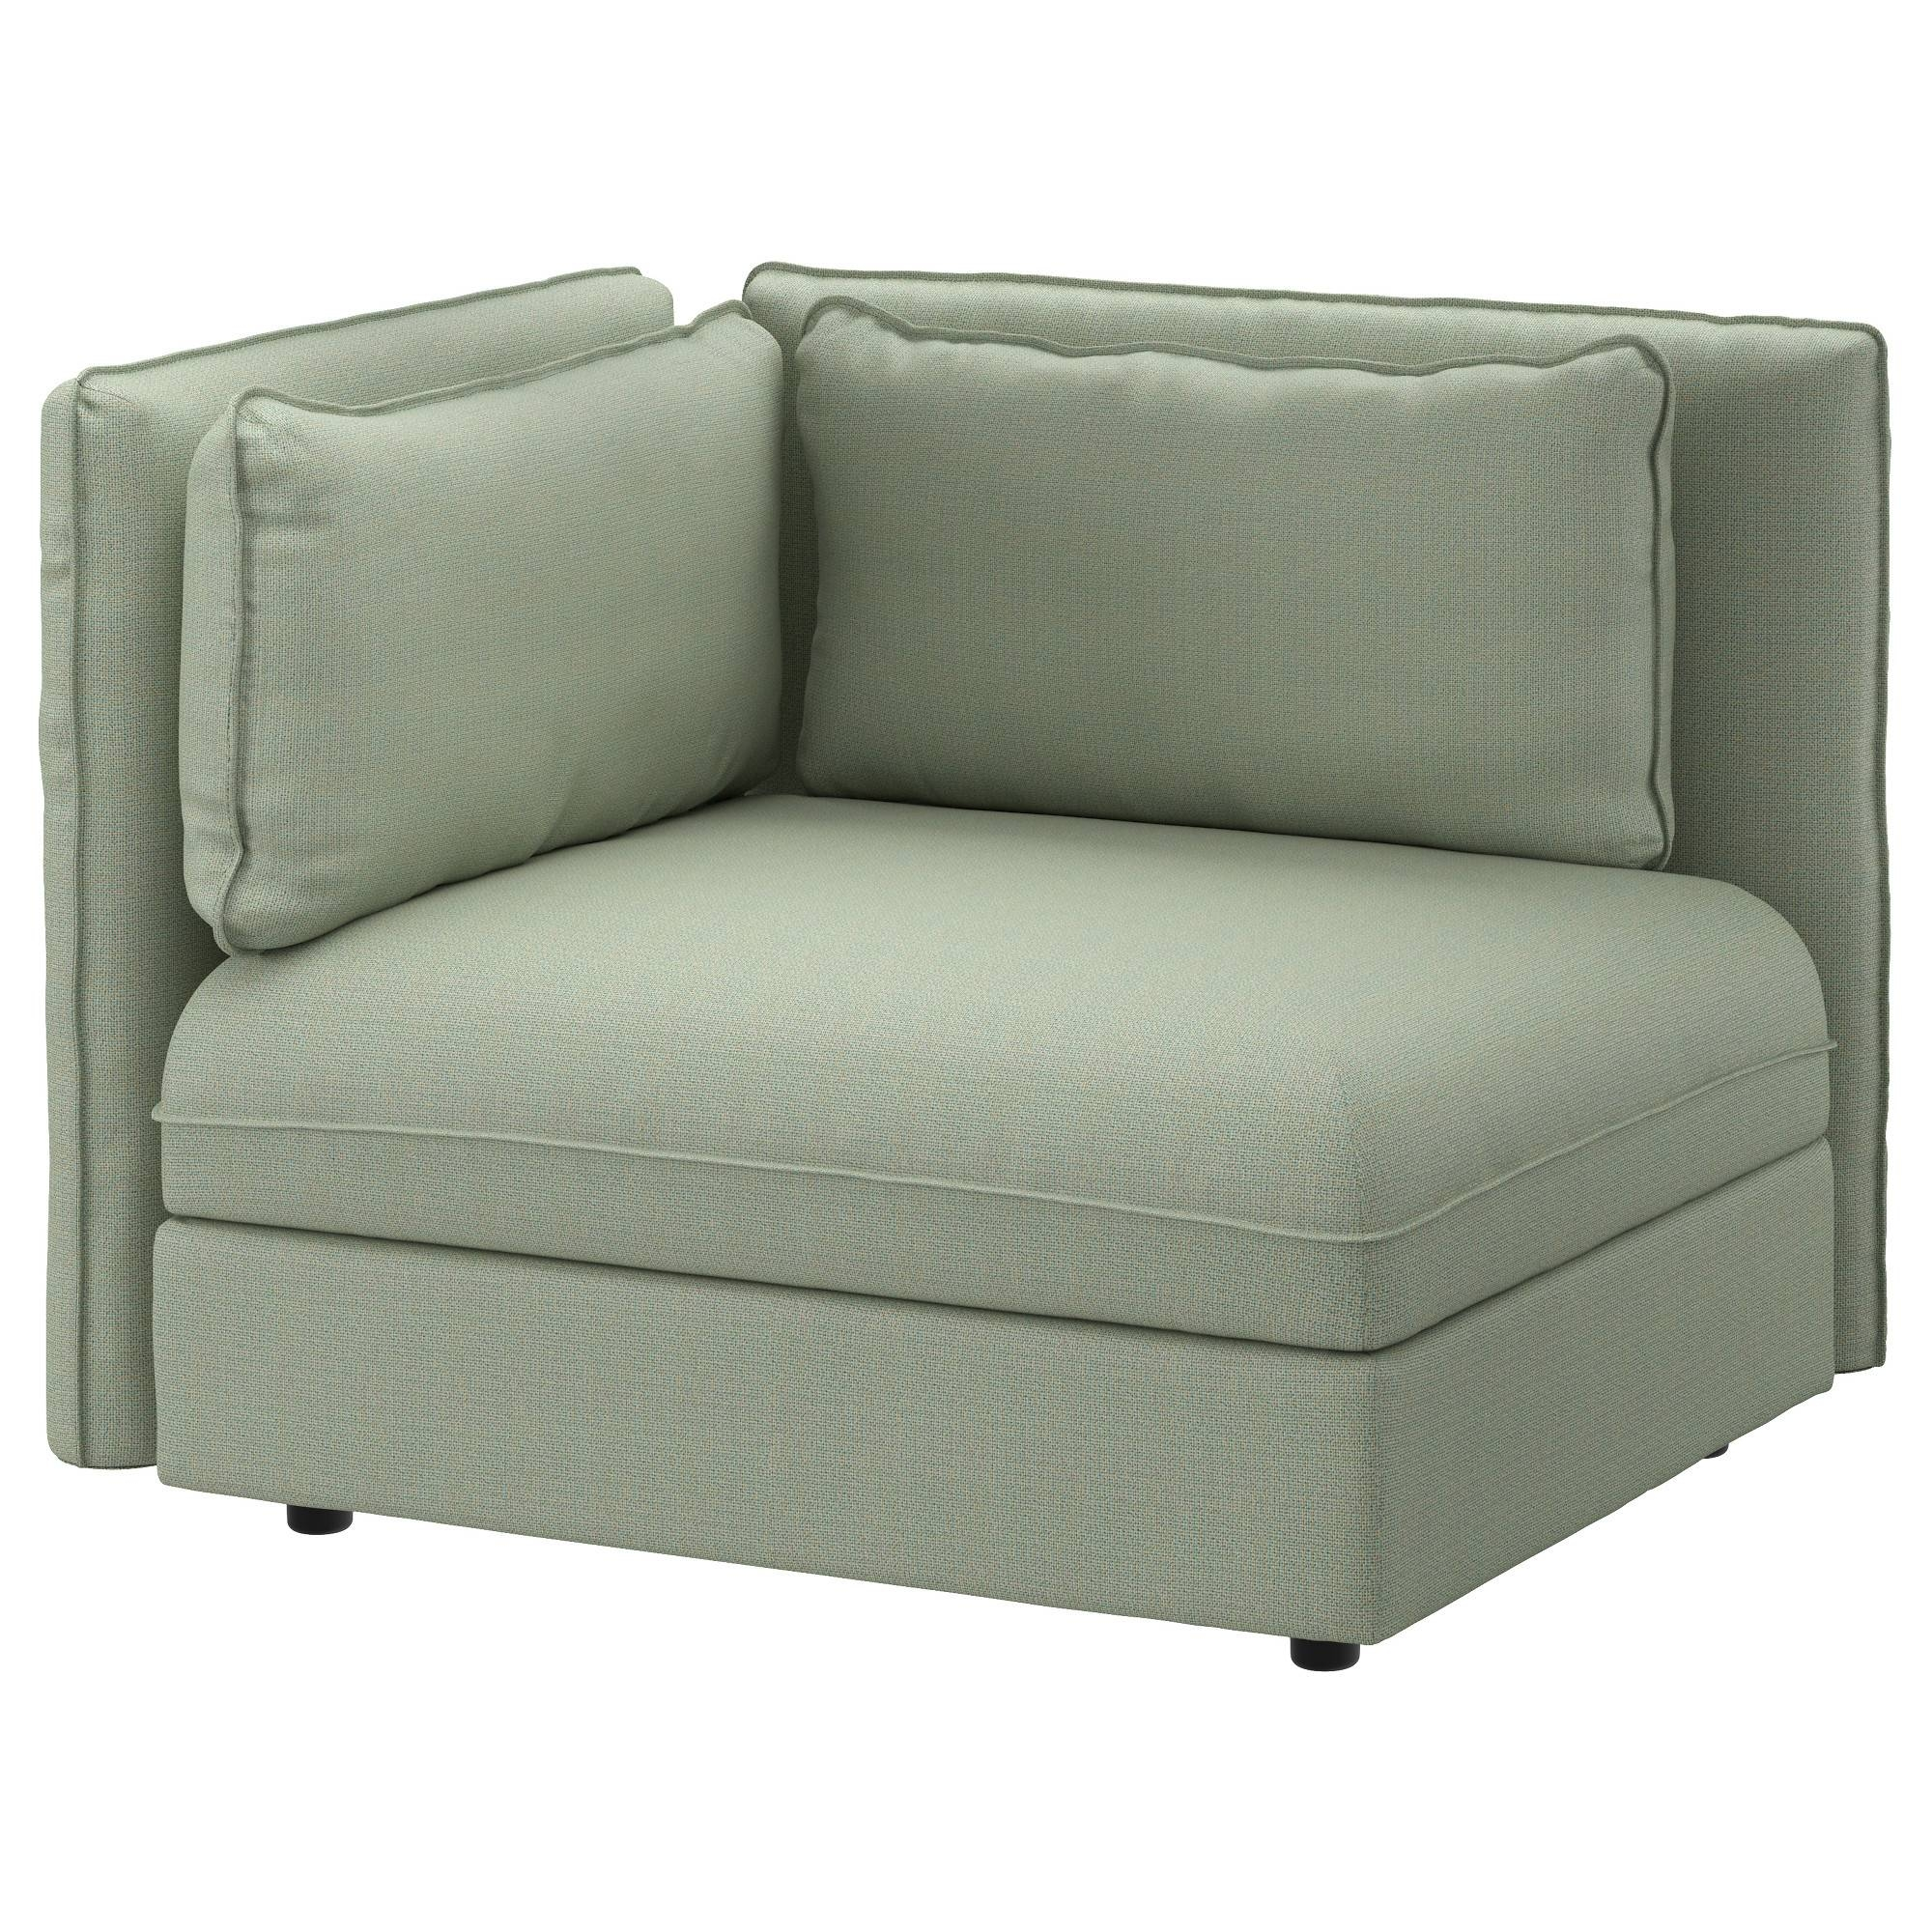 Sectional Sofas & Couches – Ikea Intended For Sleeper Sofa Sectional Ikea (View 16 of 25)